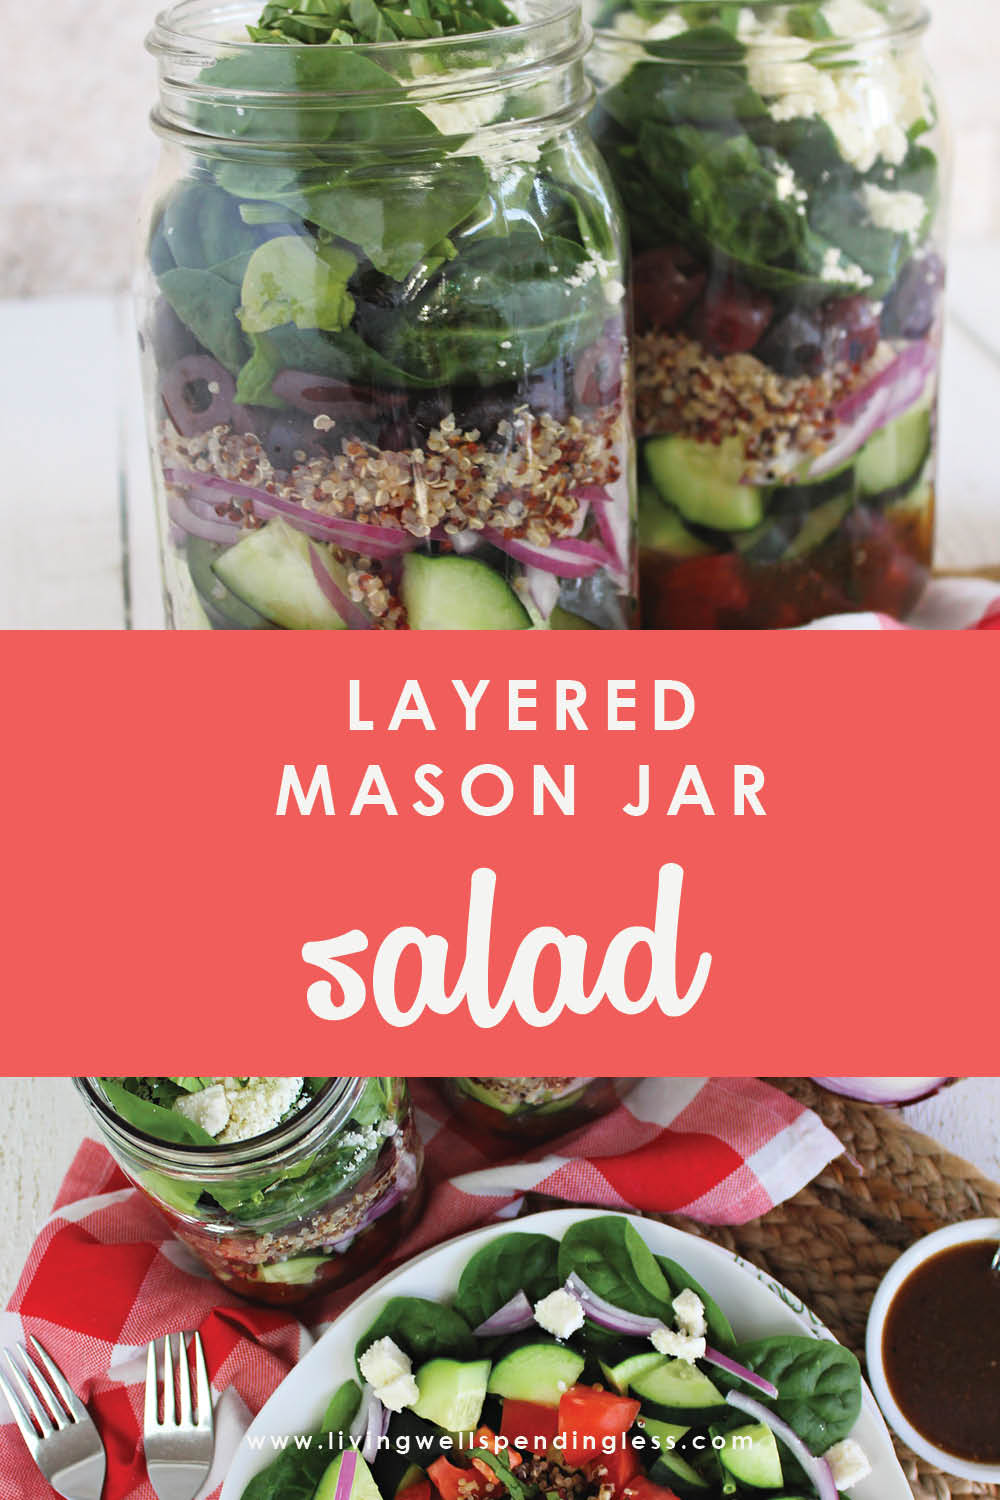 Looking for healthier lunch options that you can make ahead of time? These Mason Jar Salads are easy to assemble and will last you all week! #salads #masonjarsalads #greens #healthylunch #packyourlunch #lunchrecipes #saladrecipes #greeksalad